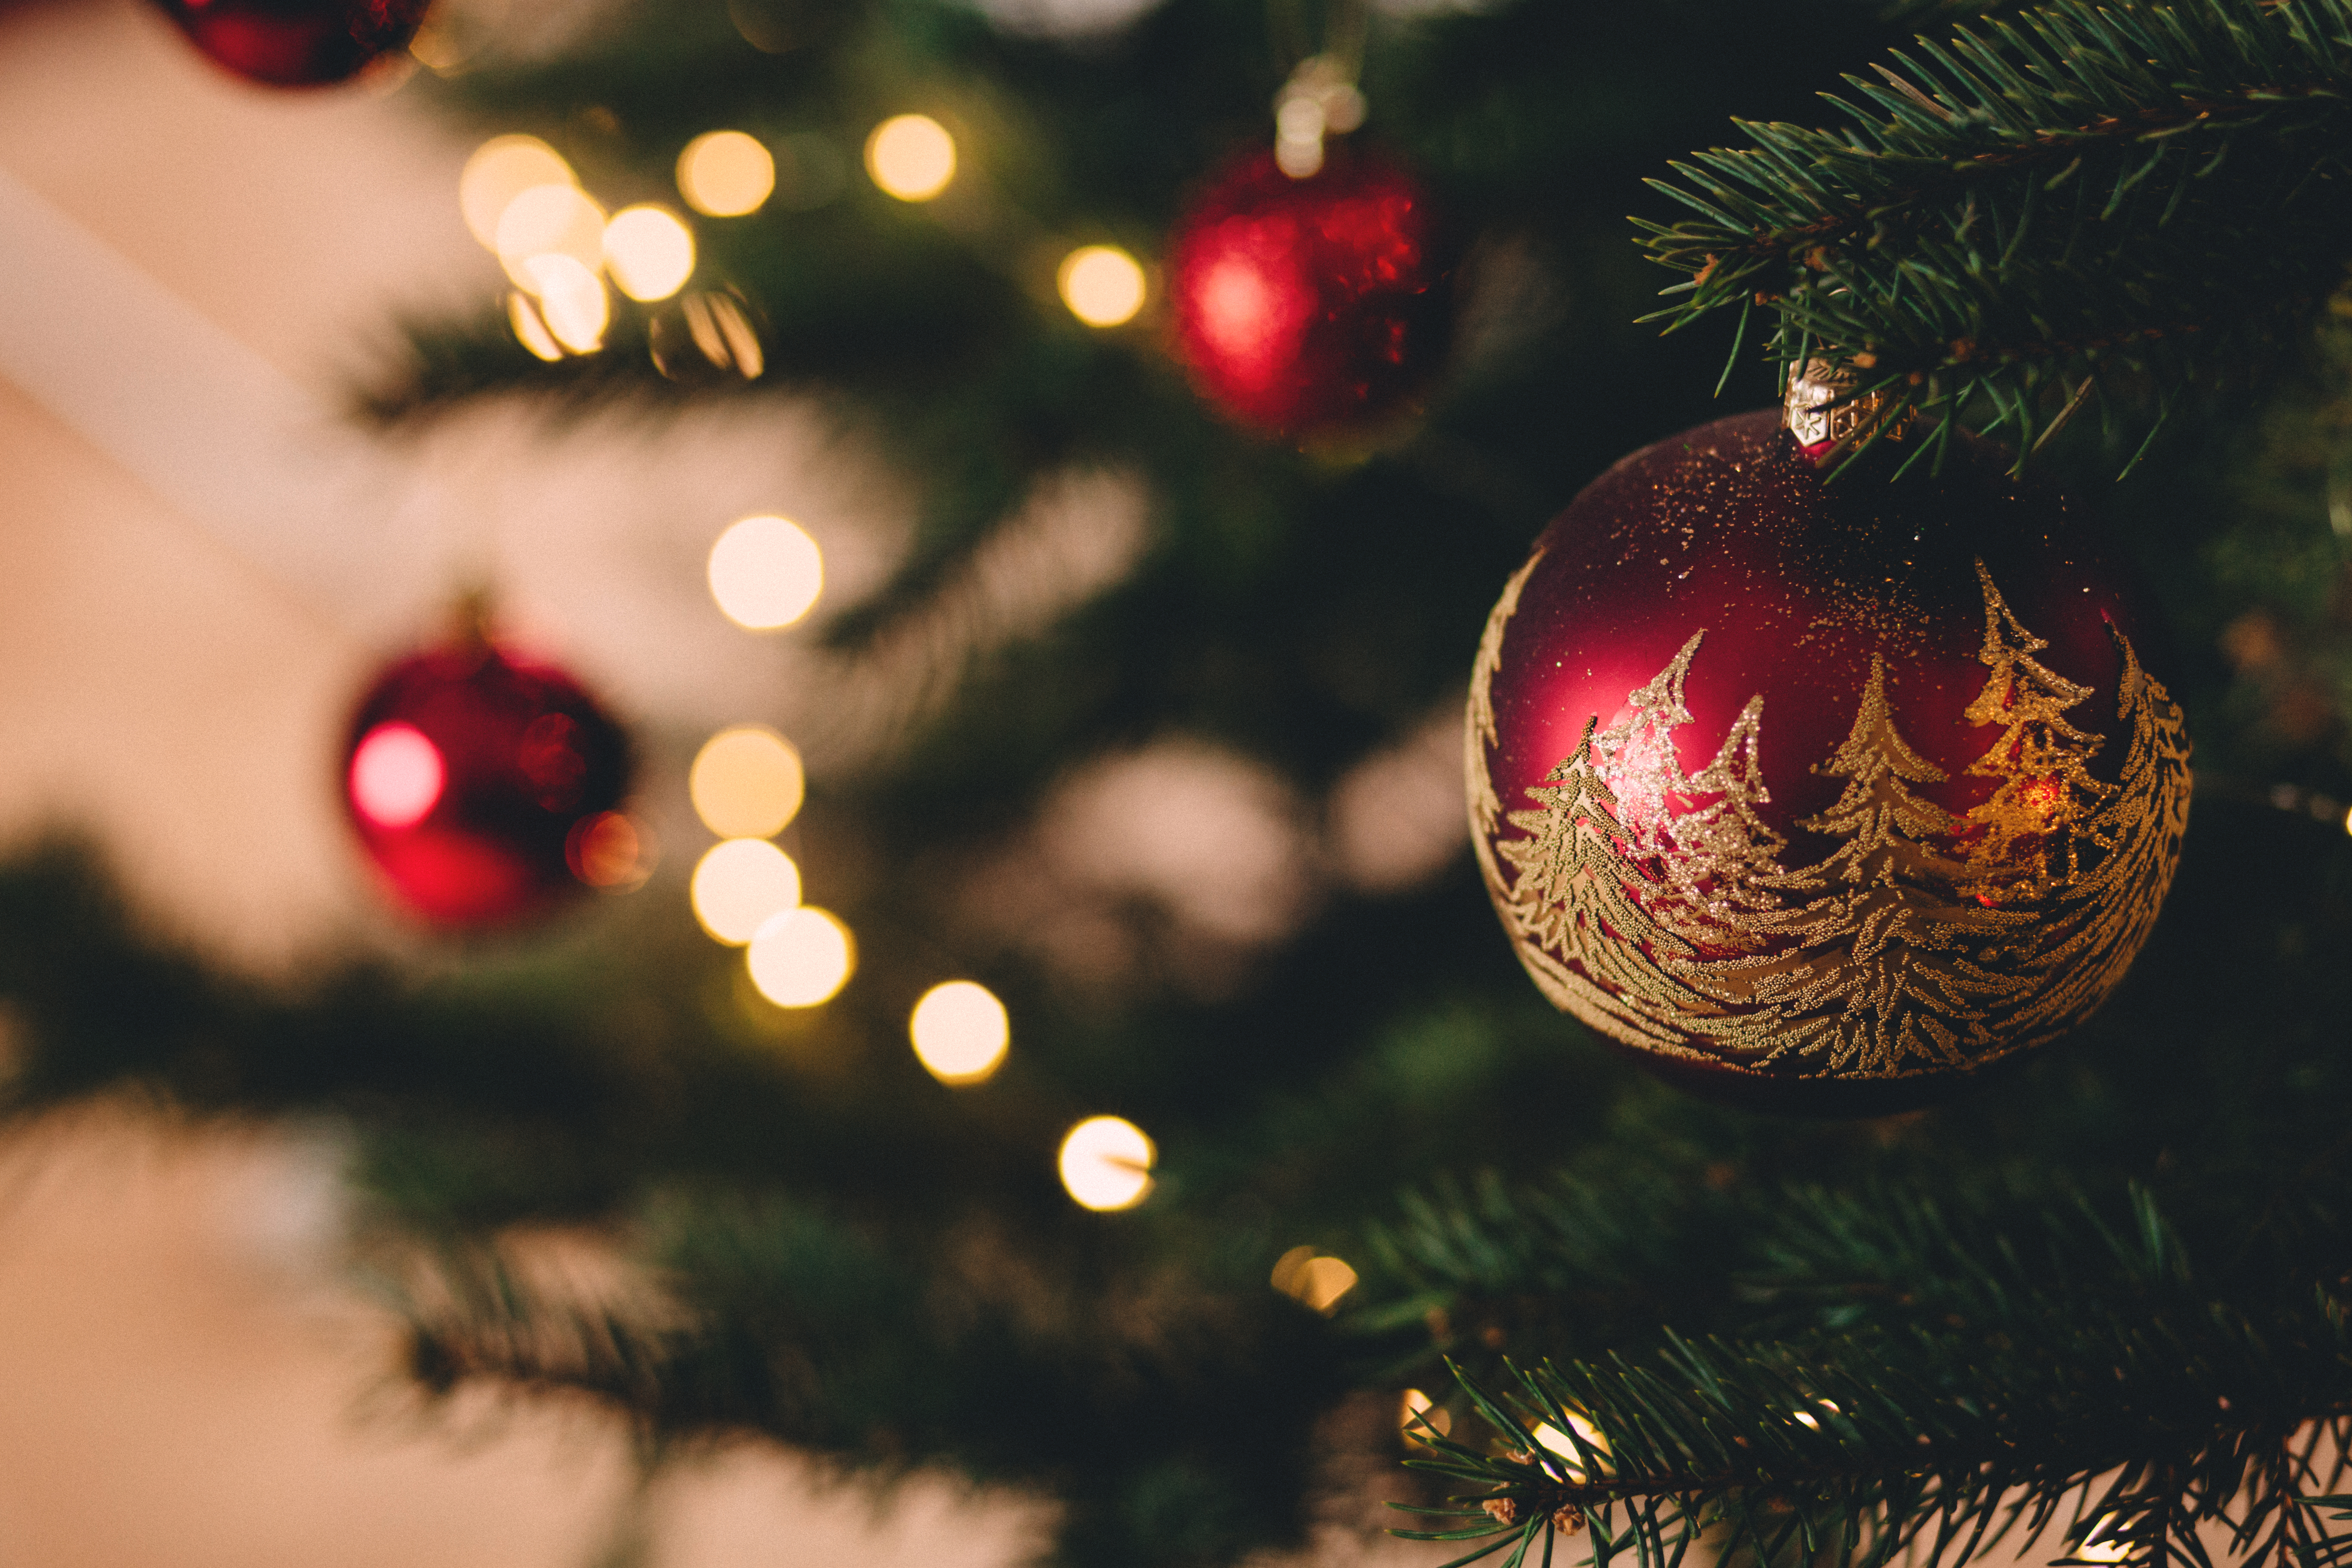 Christmas tree pictures hq download free images on unsplash